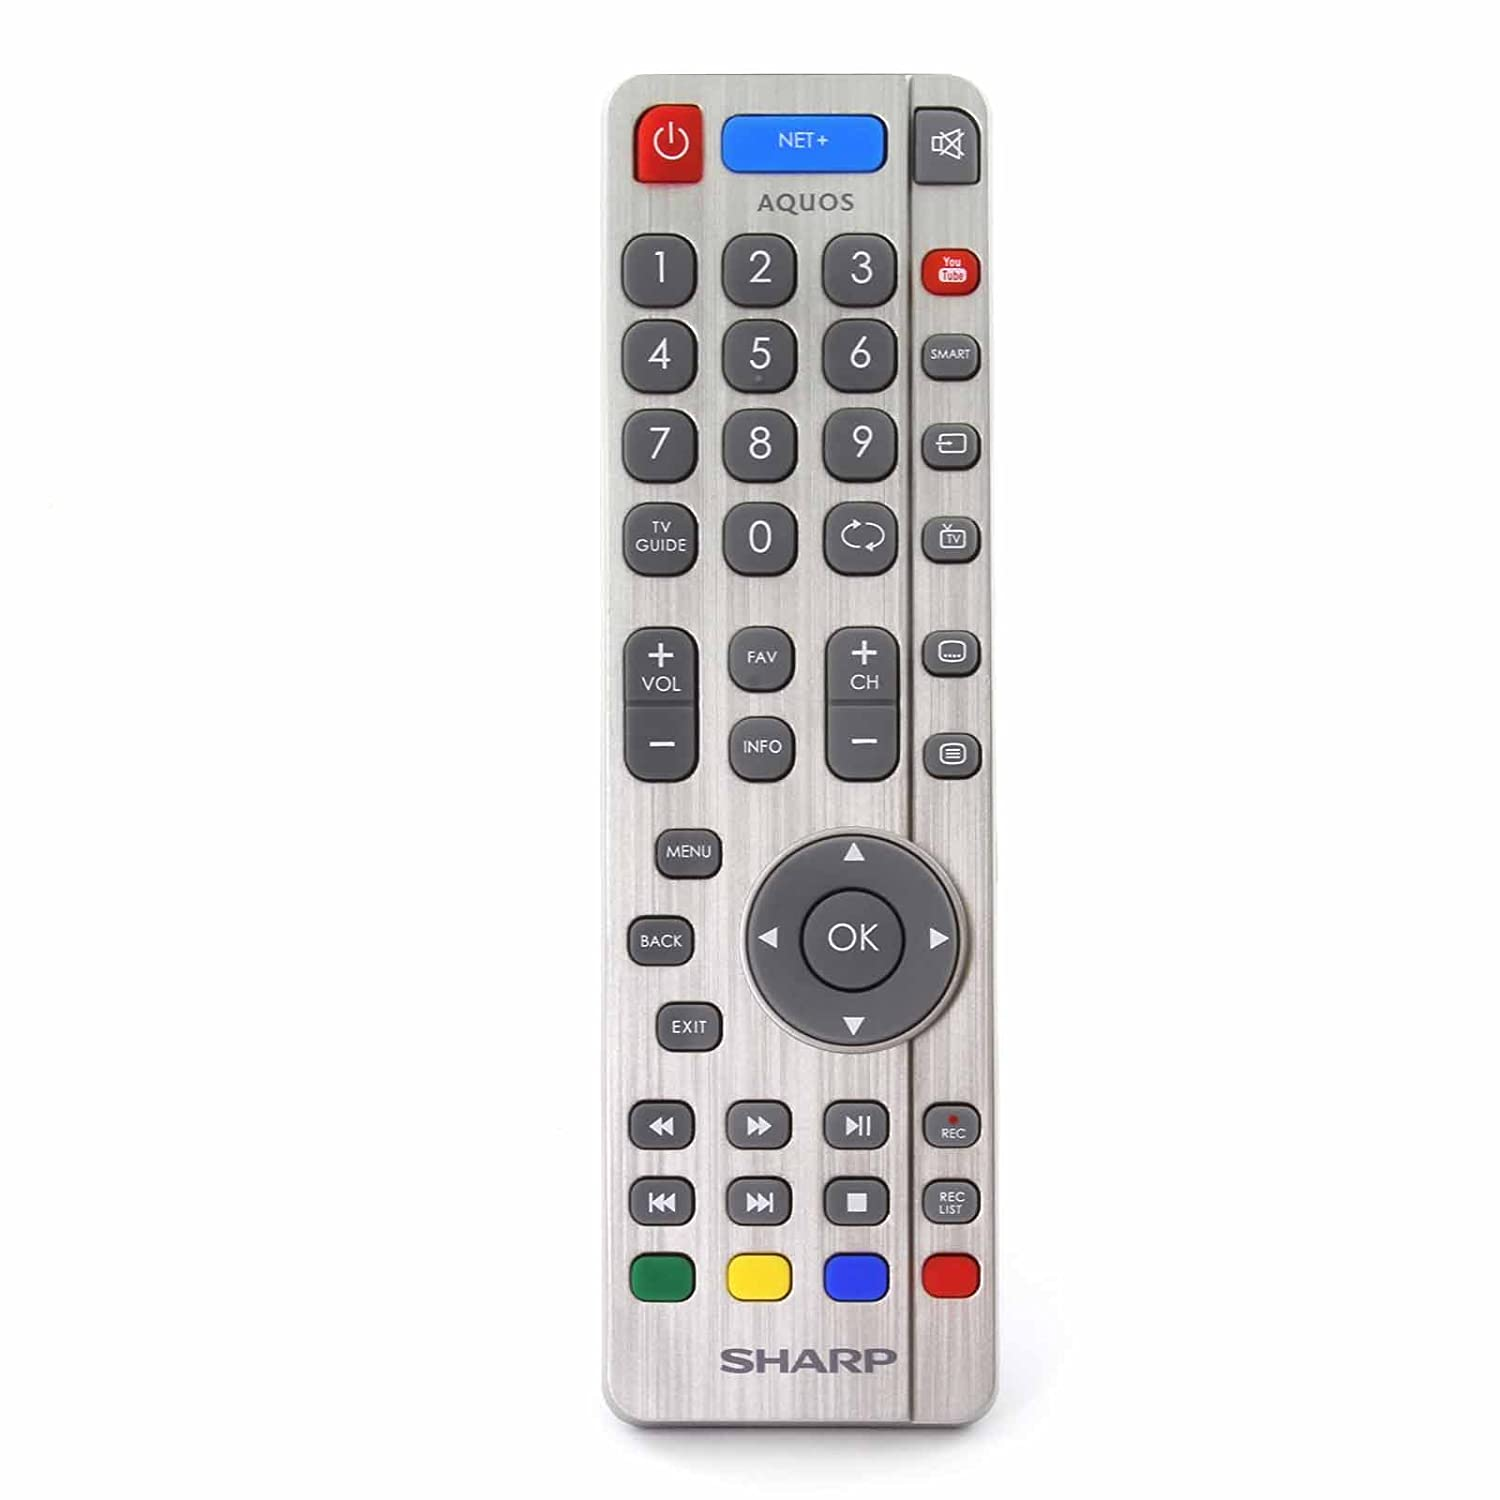 Control Remoto para Sharp Aquos RF Smart TV with Youtube and Net+ Buttons: Amazon.es: Electrónica